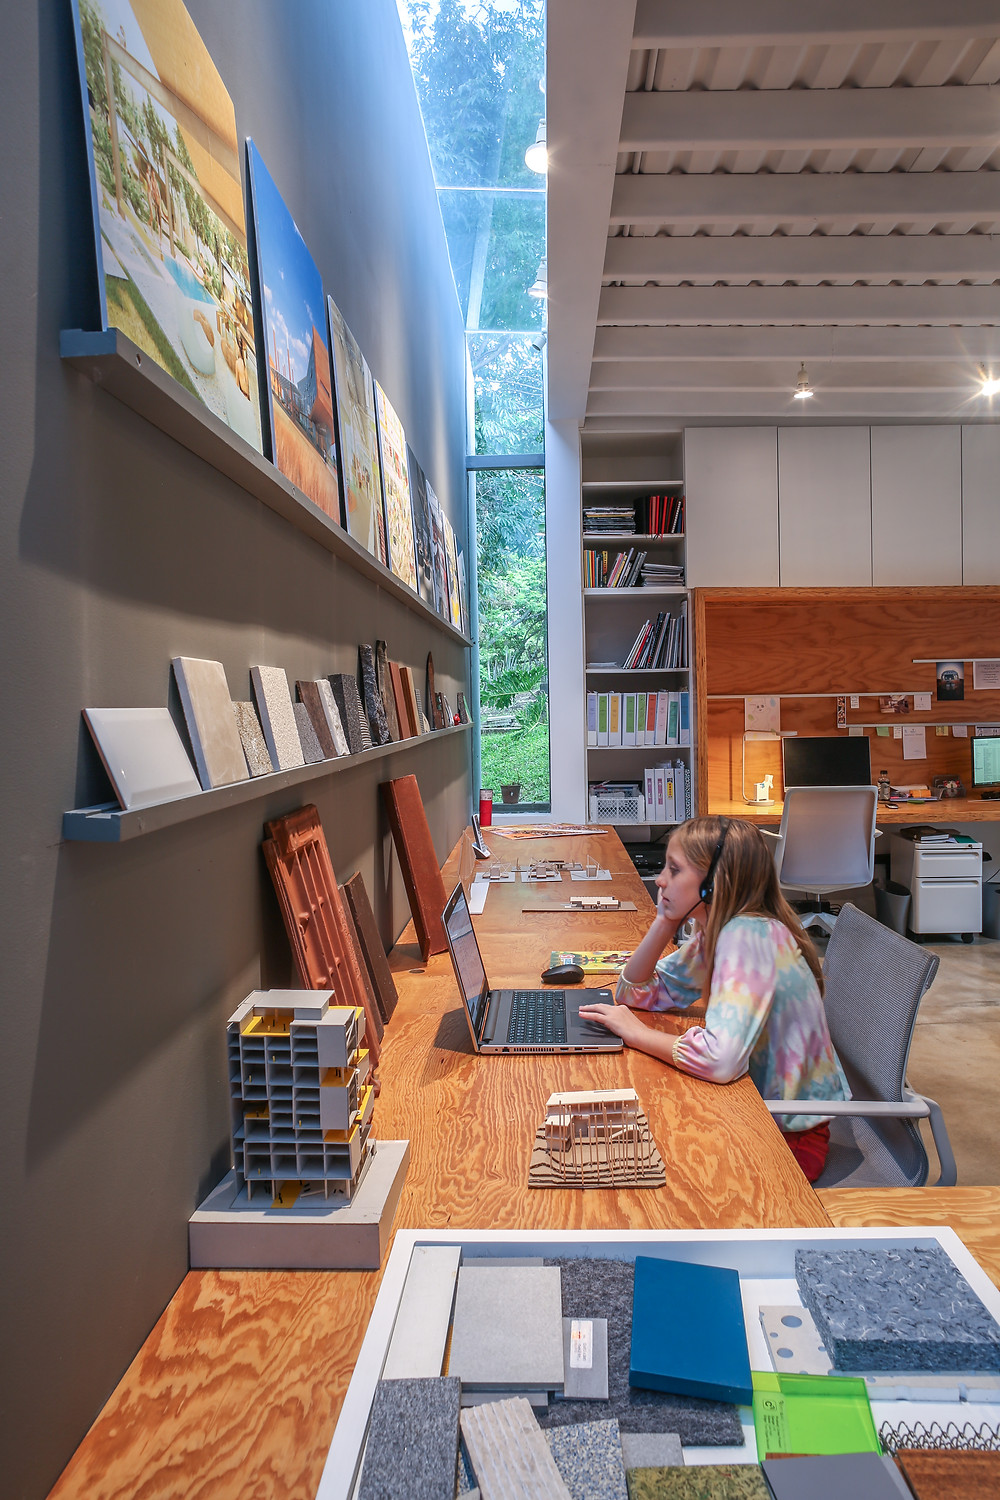 Open studio workspace designed by Inverse Project